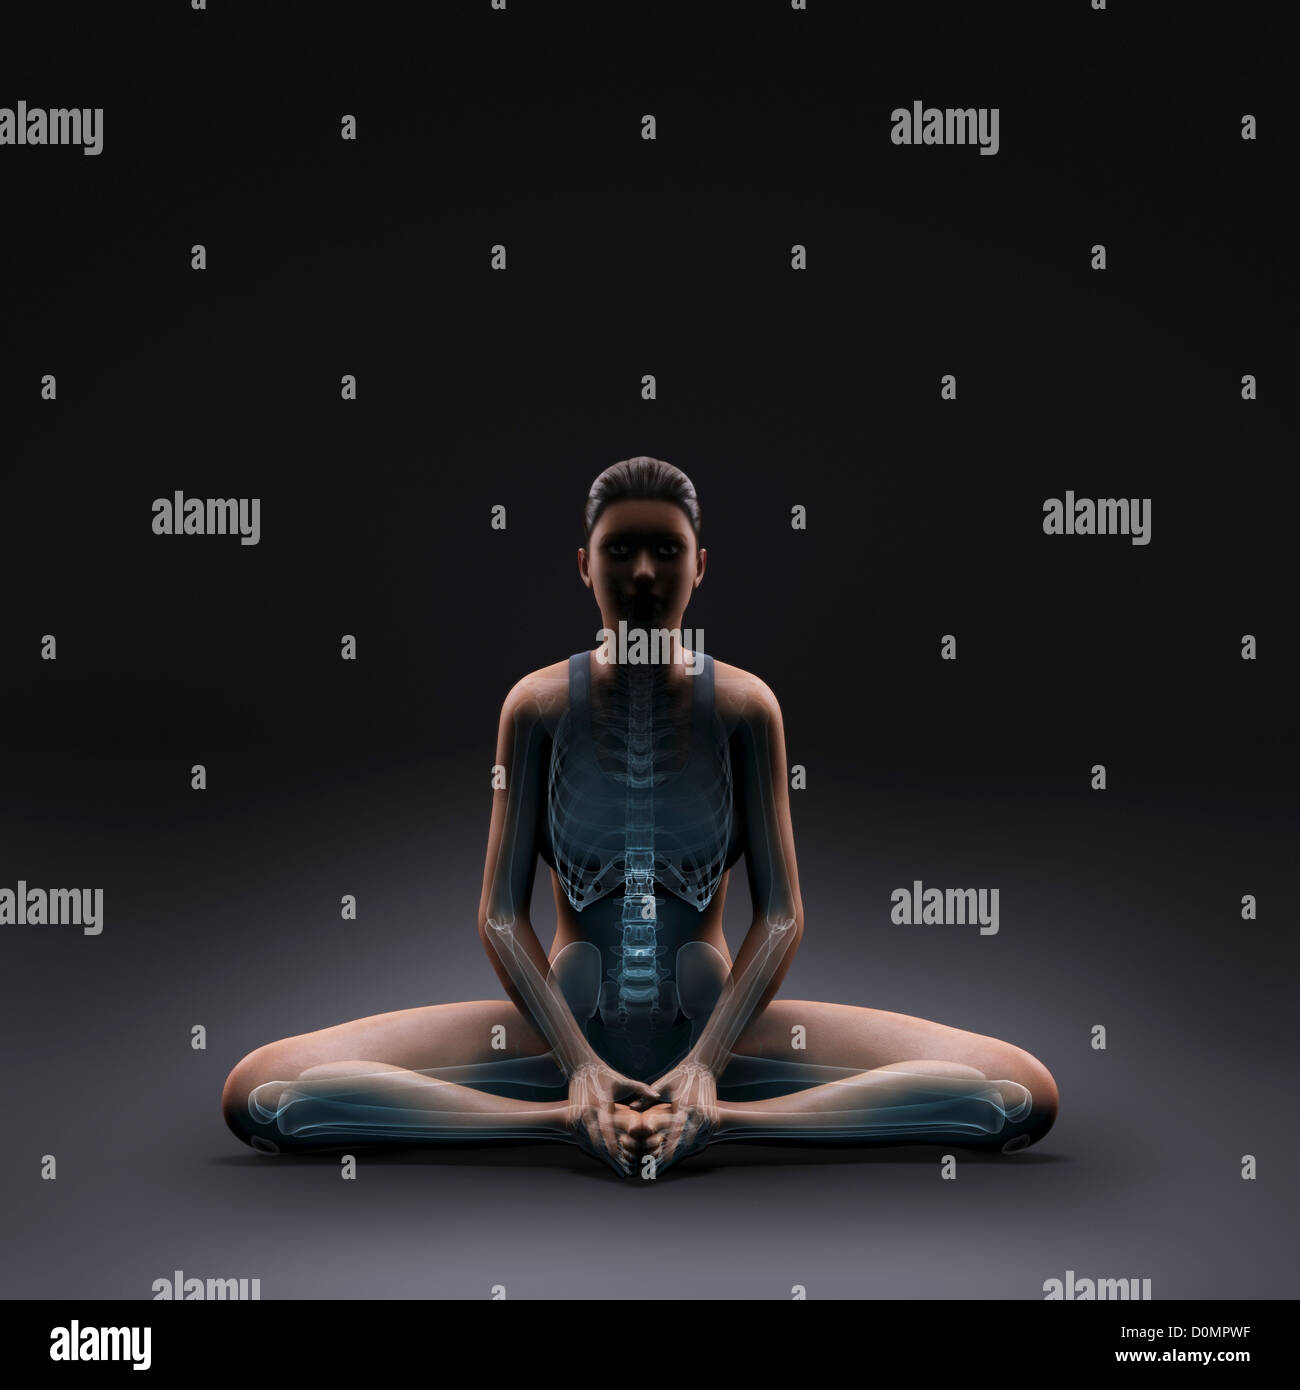 Skeleton layered over a female body in the bound angle pose showing skeletal activity in this particular yoga posture. - Stock Image